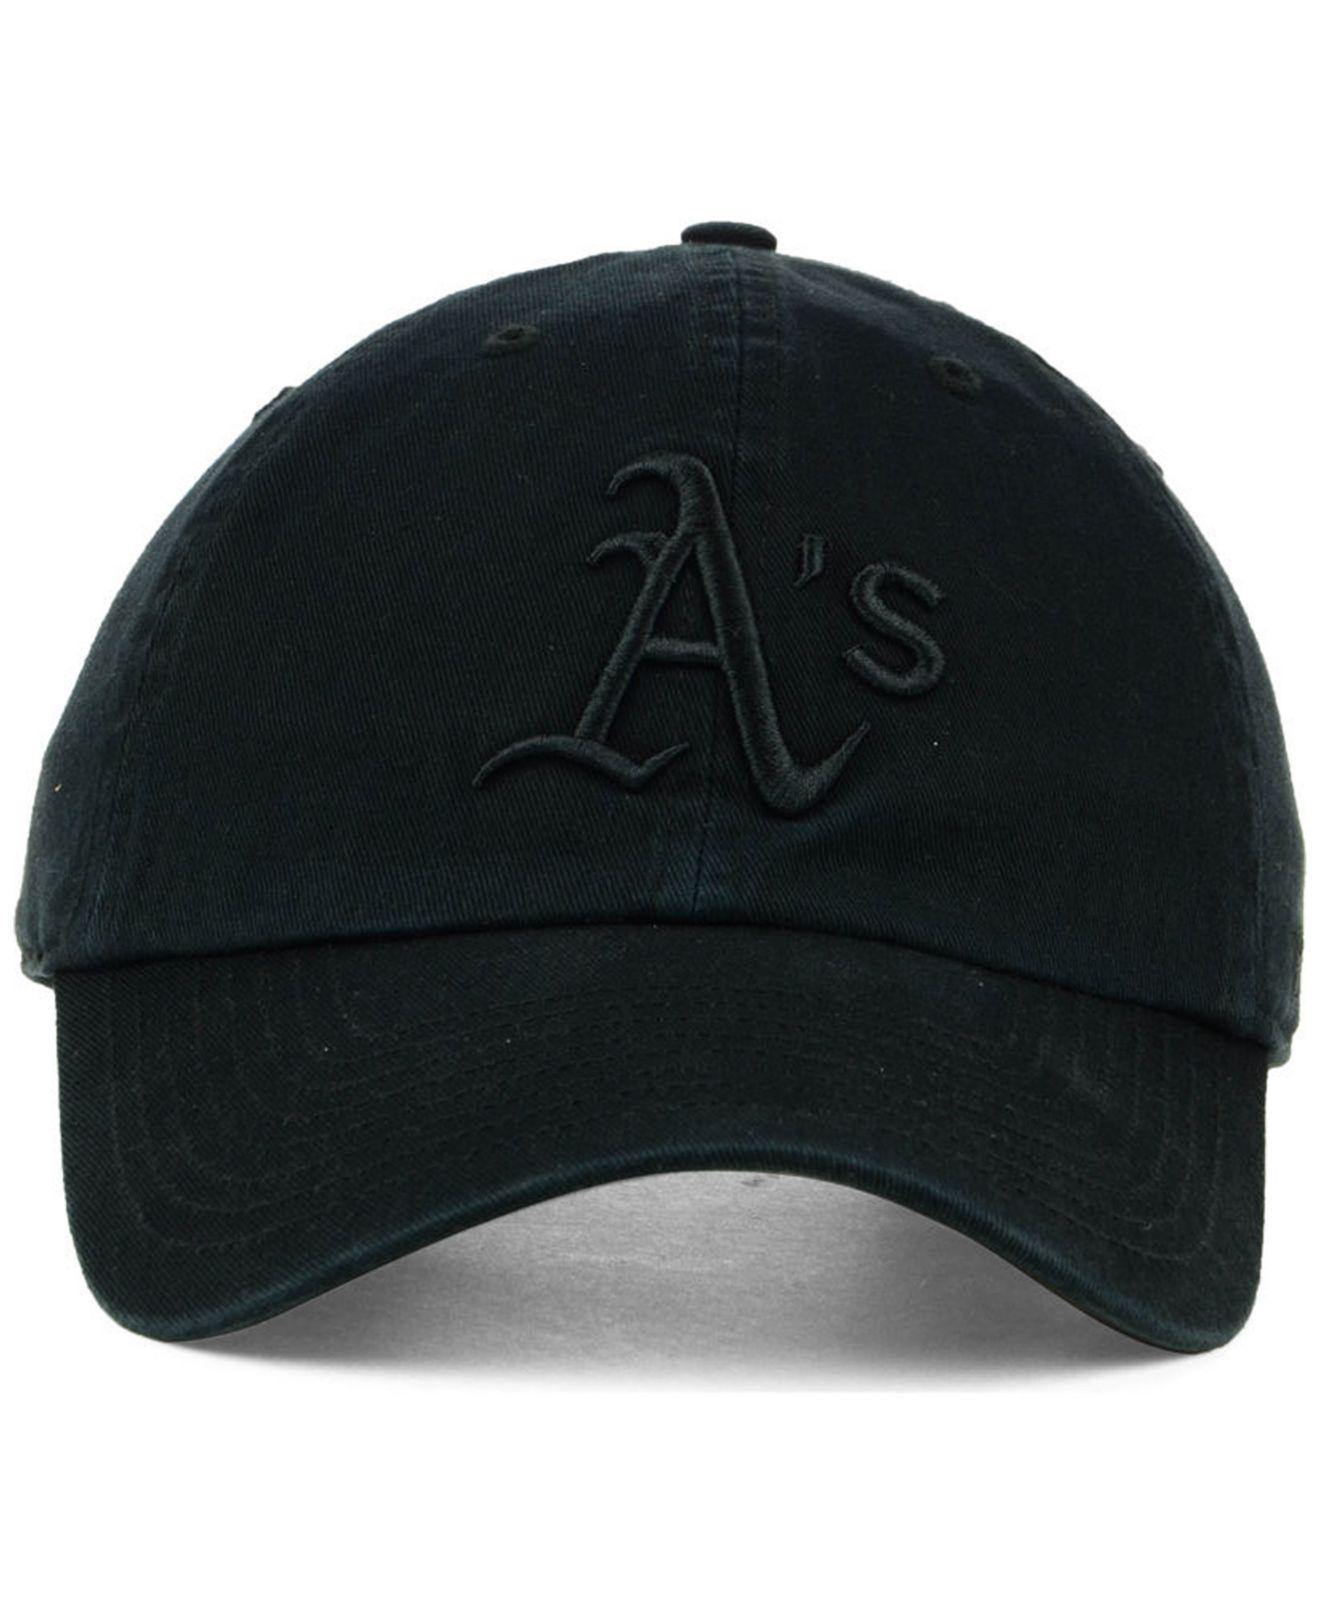 new products 3dc6a e0df6 canada oakland athletics hats as baseball caps snapbacks fansedge a3a92  a120d  where to buy lyst 47 brand oakland athletics black on black clean up  cap in ...